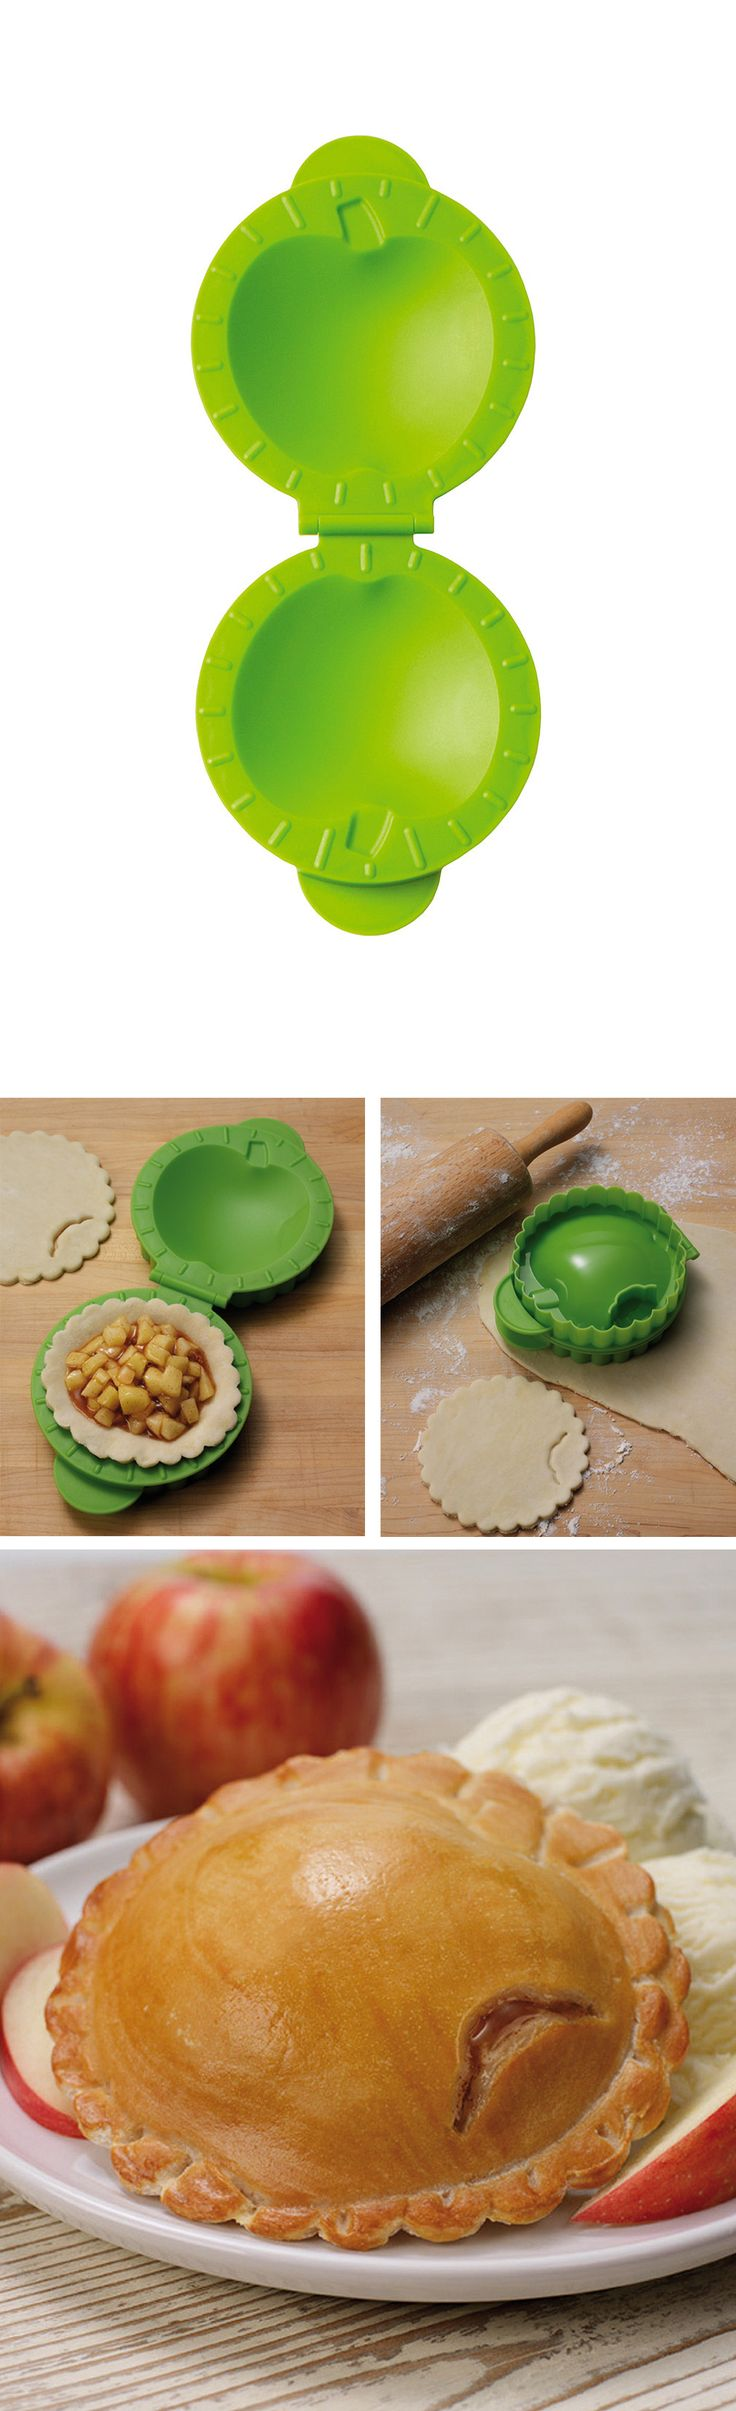 Mini Pie Maker - simply cut the dough and fill with sweet or savory fillings.